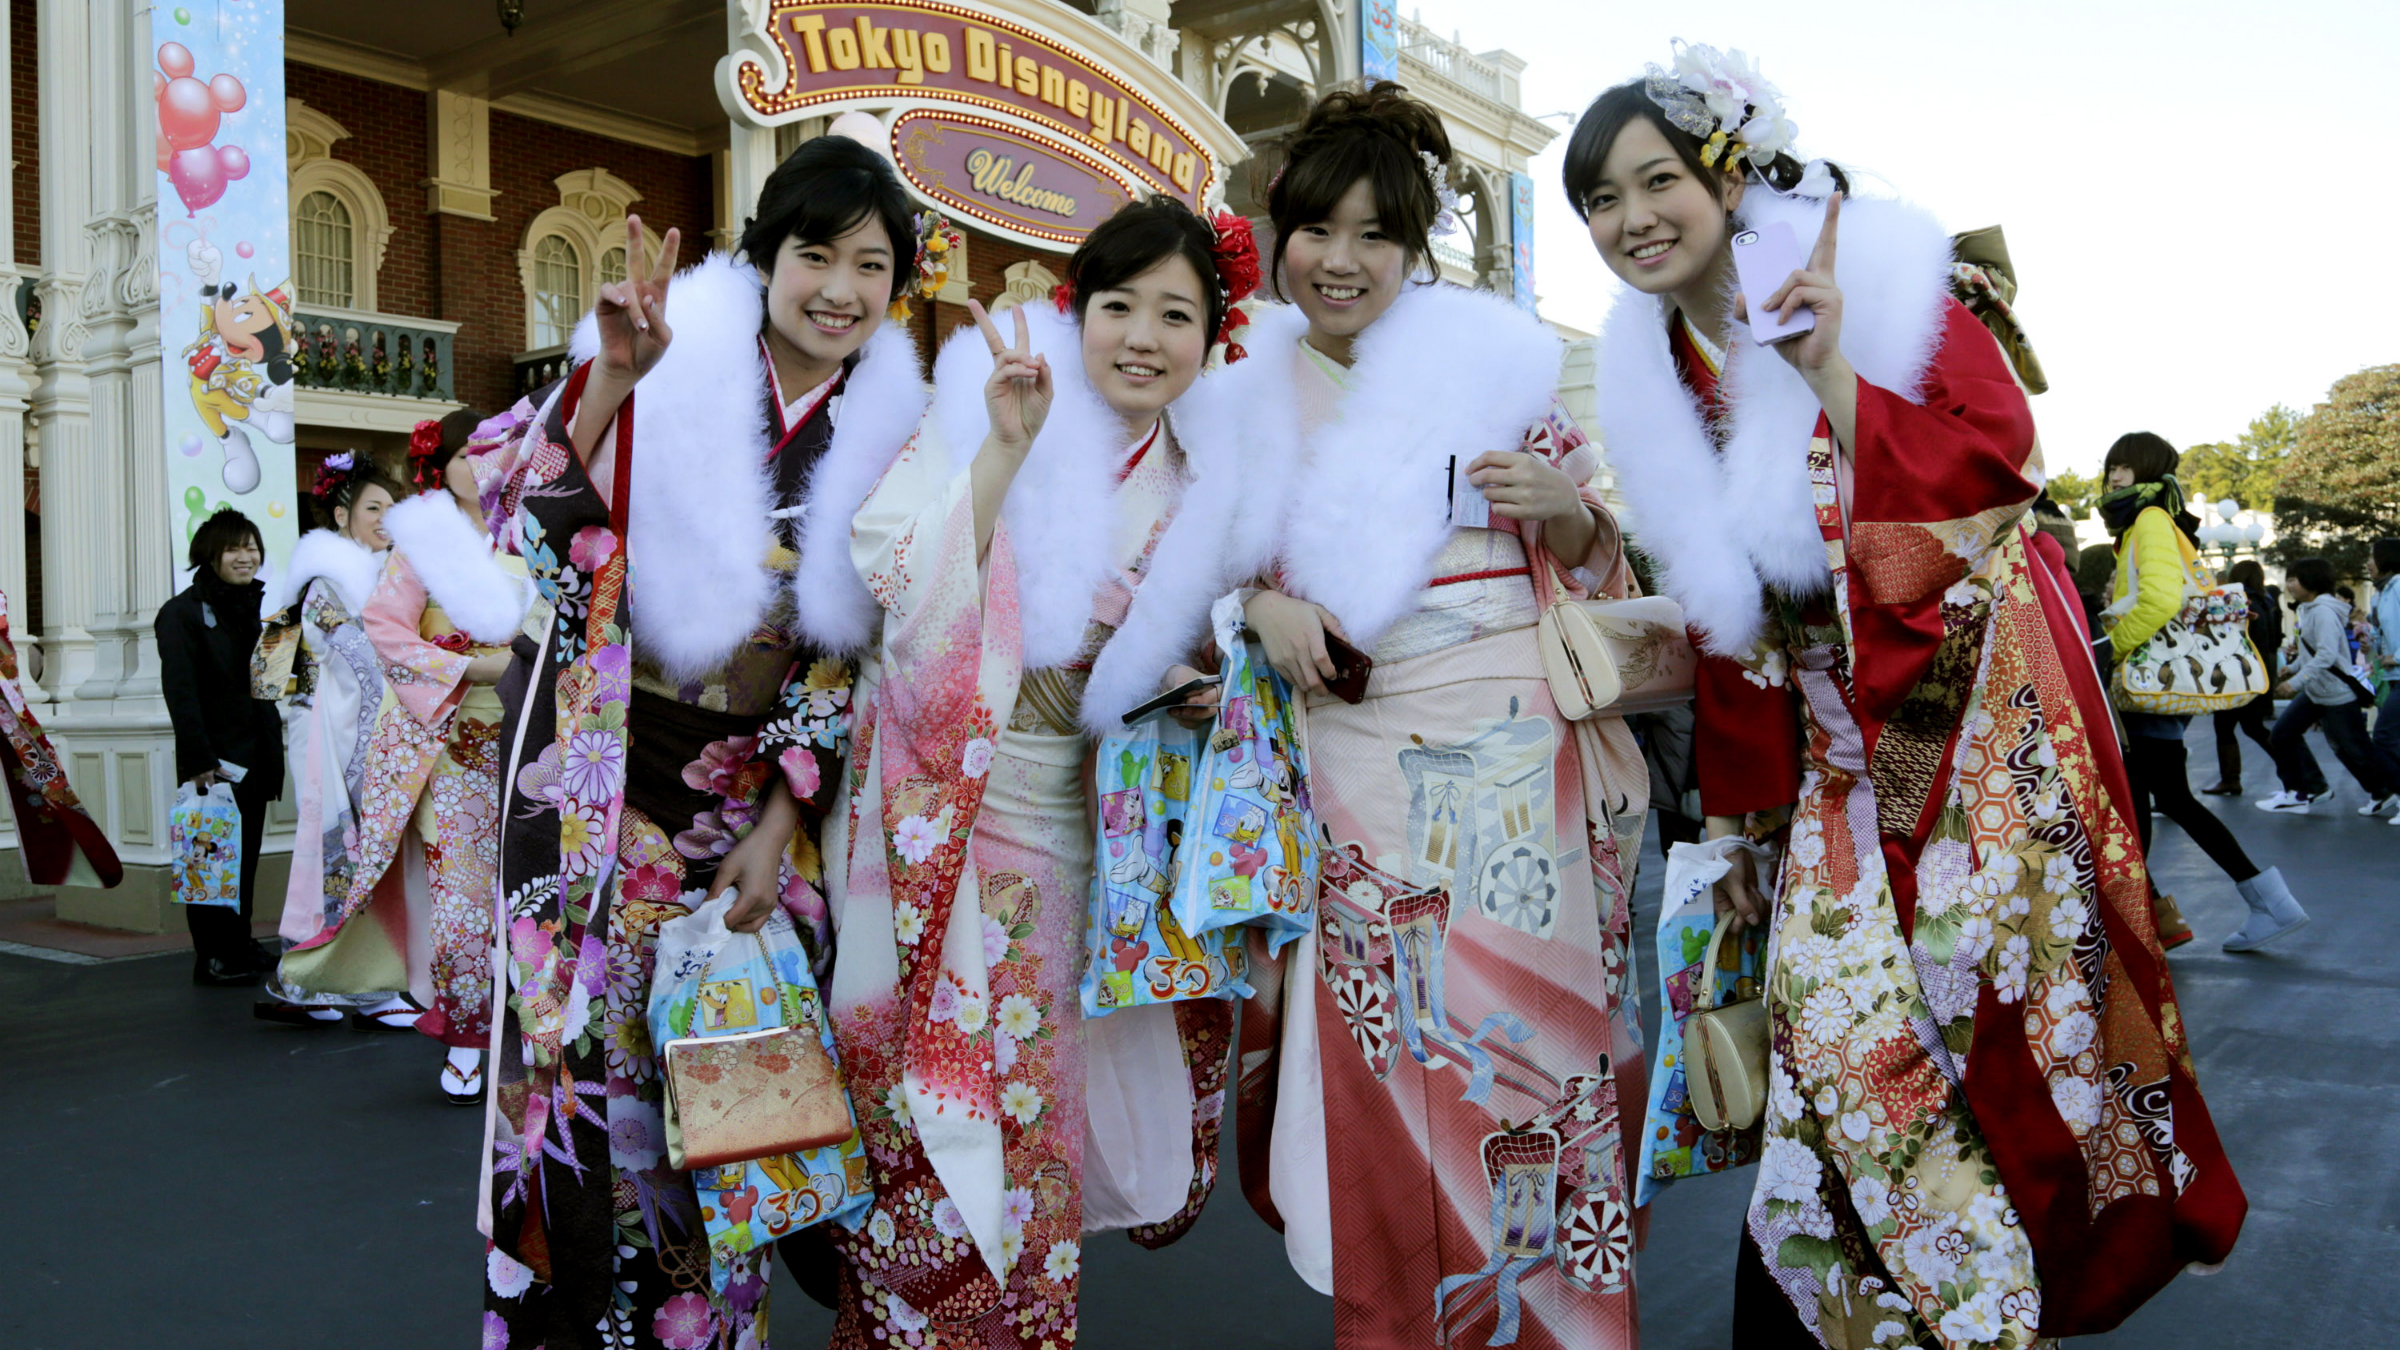 Japanese women dressed in kimonos, who will turn 20-years-old this year, pose for photographers after attending a Coming of Age ceremony at Tokyo Disneyland at Urayasu, near Tokyo, Monday, Jan. 13, 2014. (AP Photo/Shizuo Kambayashi)